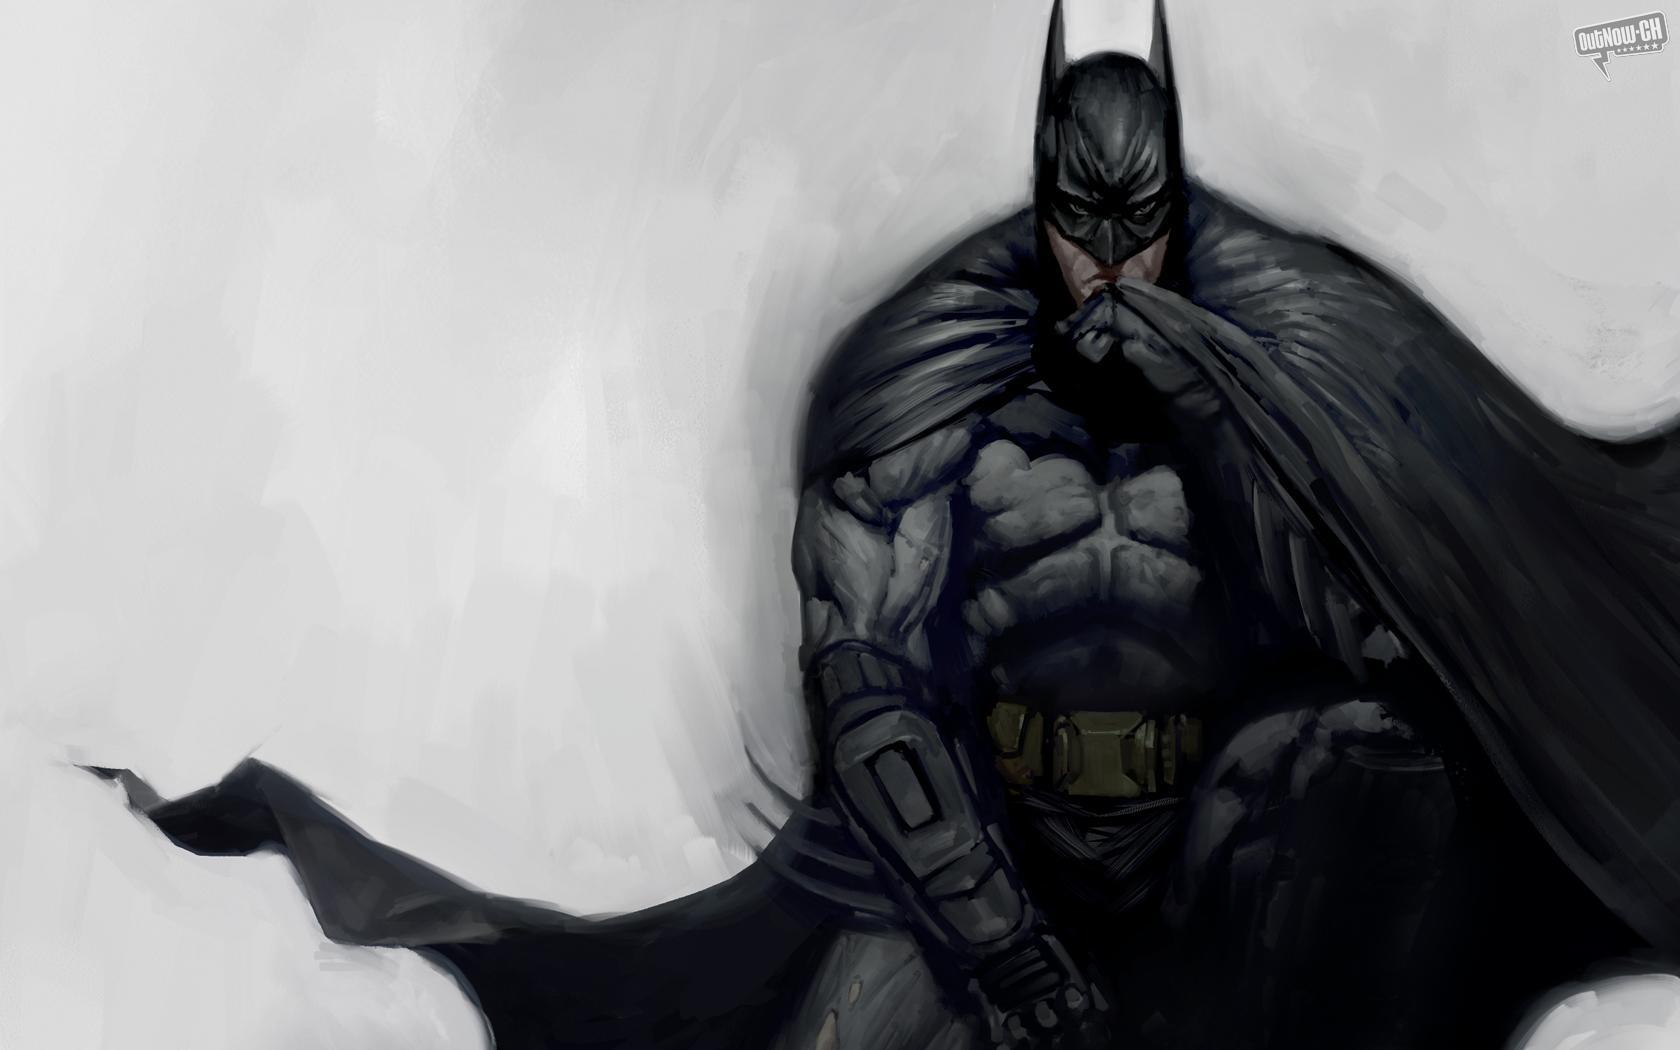 1680x1050 Batman Arkham City desktop PC and Mac wallpaper 1680x1050